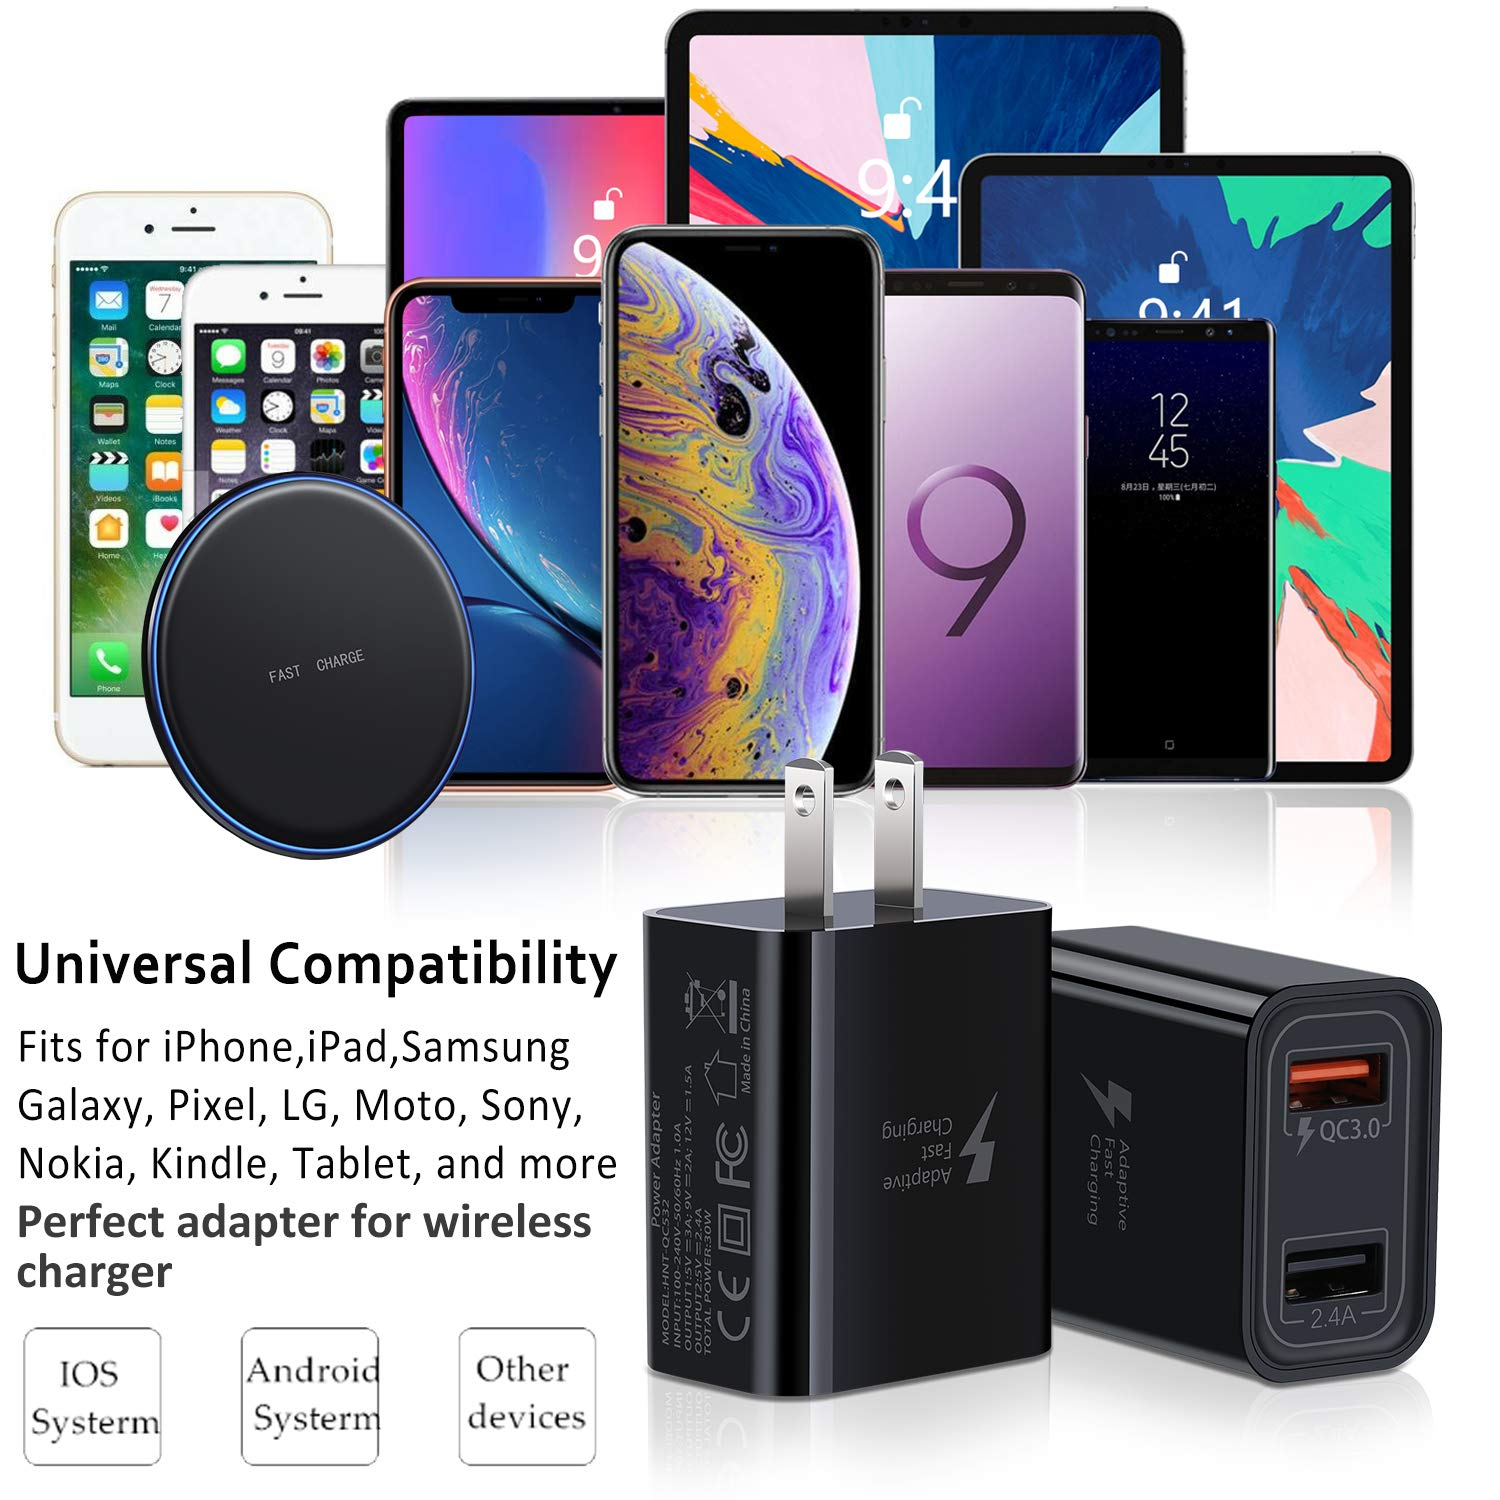 Samsung Galaxy S10 S9 S8 Plus S7 S6 Edge Pofesun 4Pack 30W Dual Ports QC 3.0 30W USB Wall Charger QC 3.0 + 2.4A Portable Travel Fast USB Charger Desktop Charging Station Compatible for iPhone X//Xs//XS Max//XR//8//8+//7P//7//6//5 Quick Charge 3.0 Wall Charger